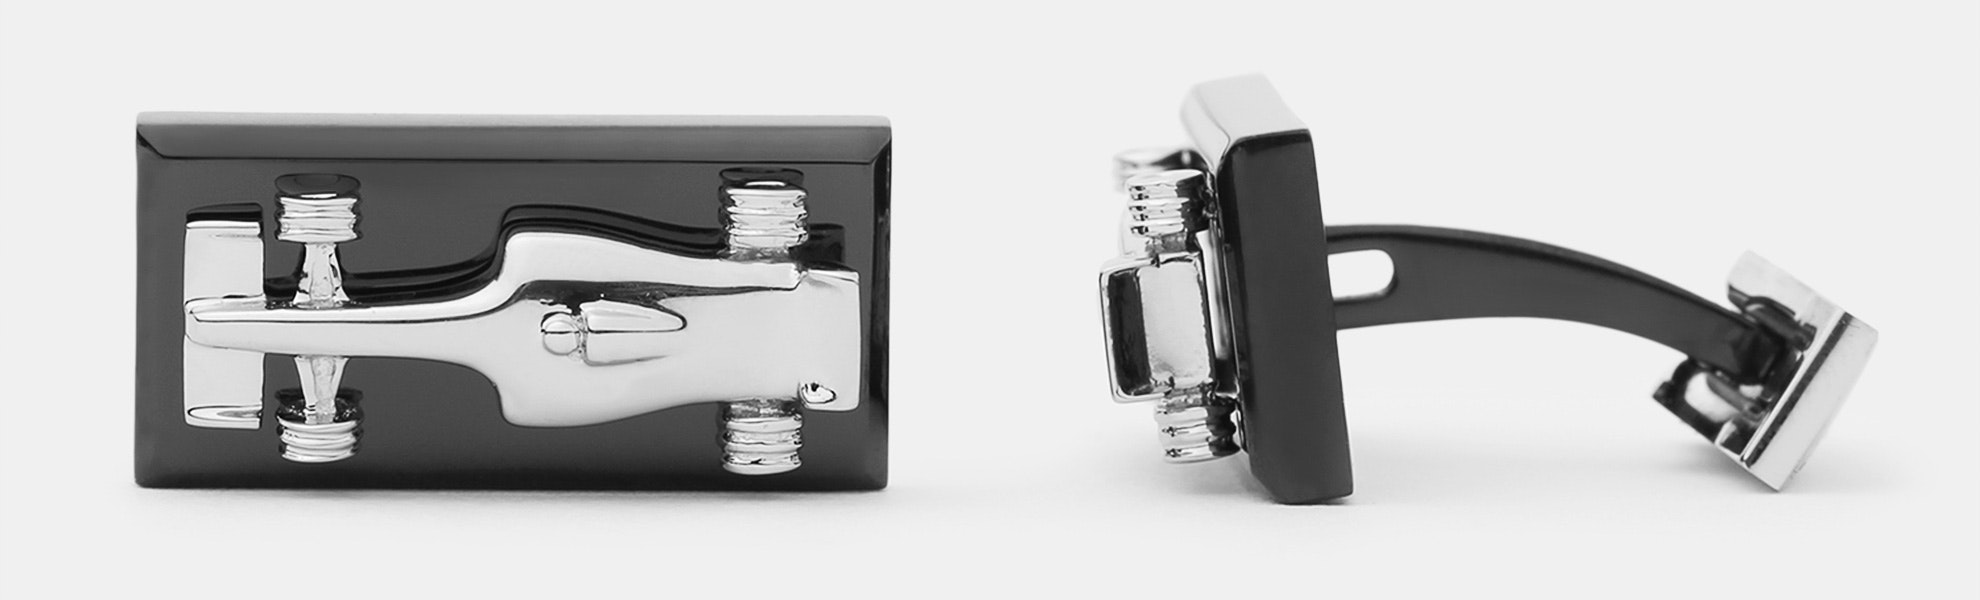 S.T. Dupont Limited-Edition McLaren F1 Cuff Links